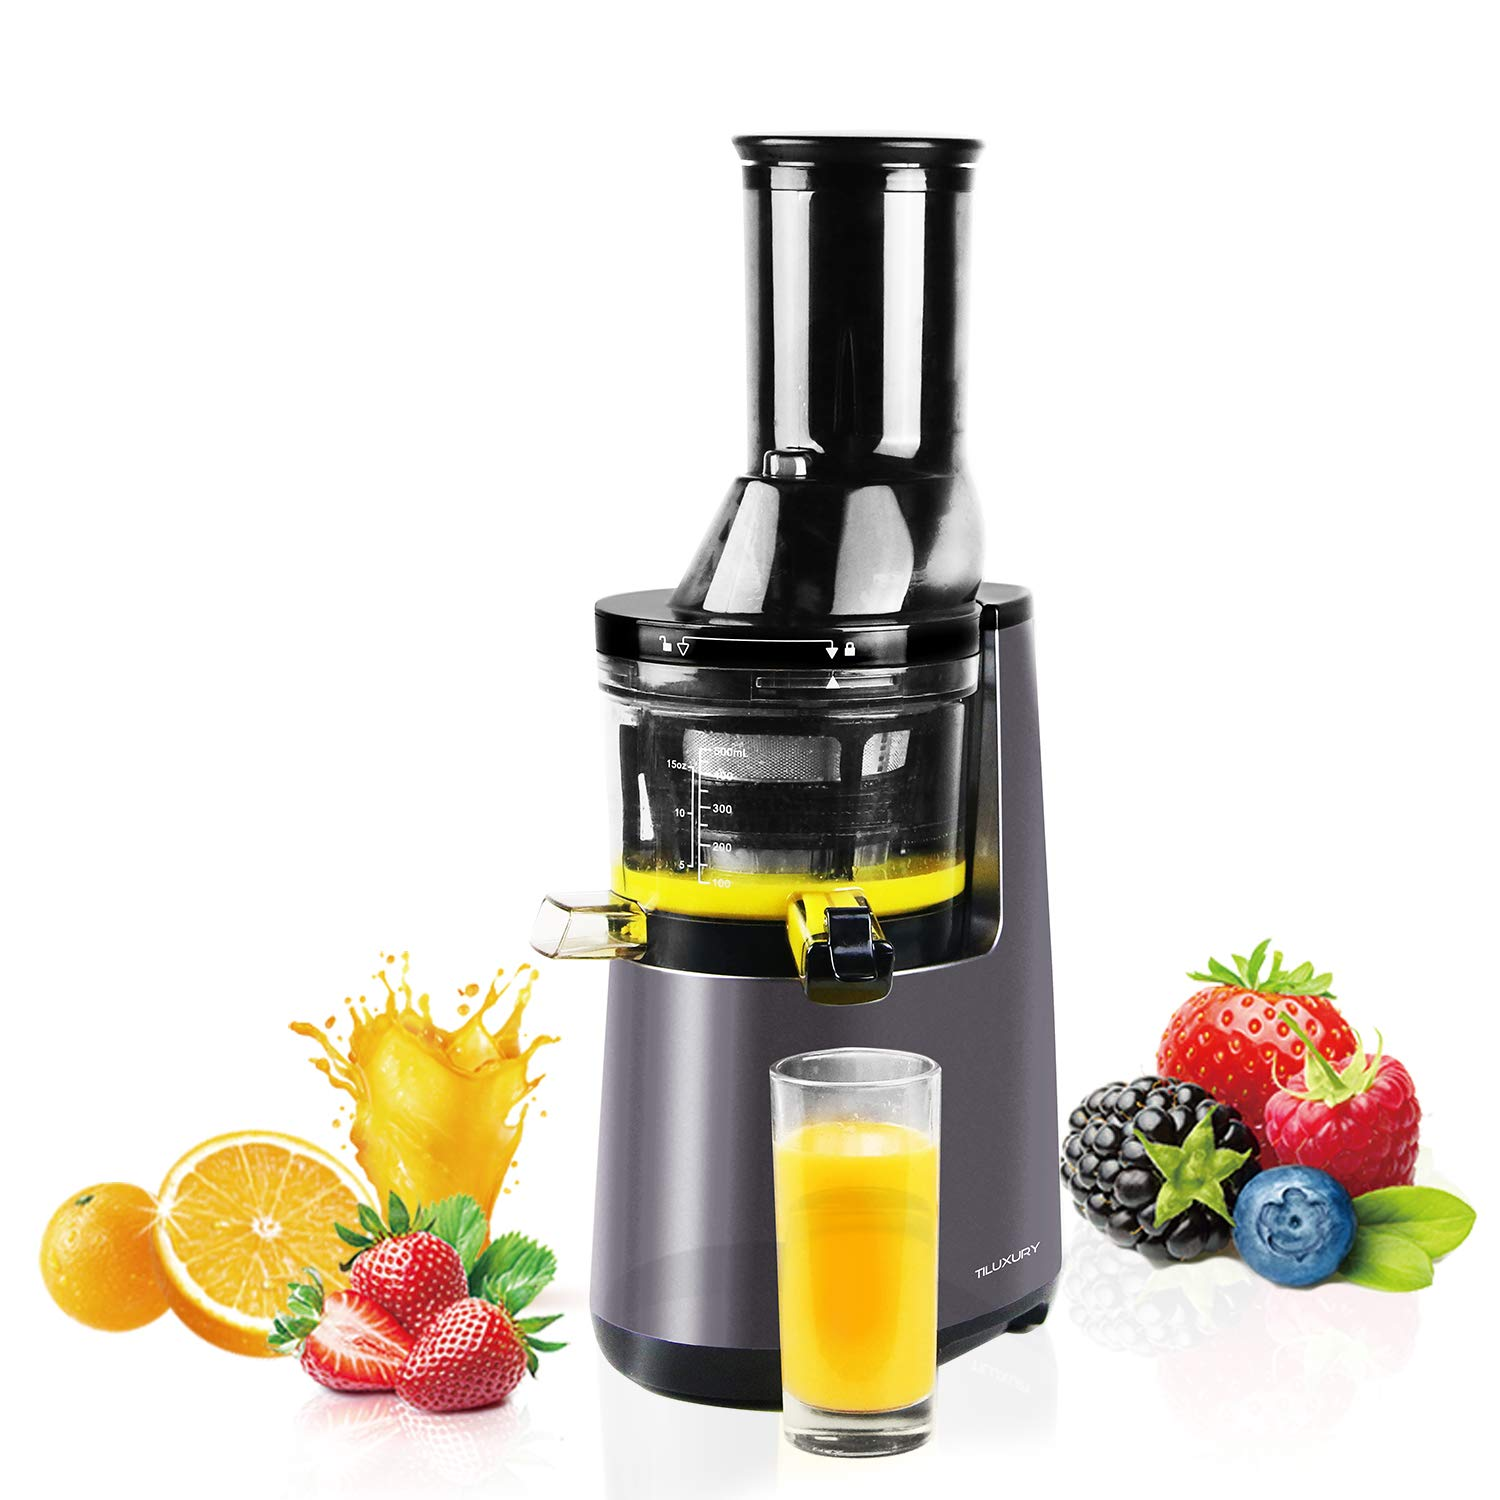 Amazon.com: HYD-Parts Slow Masticating Juicer extractor with ...